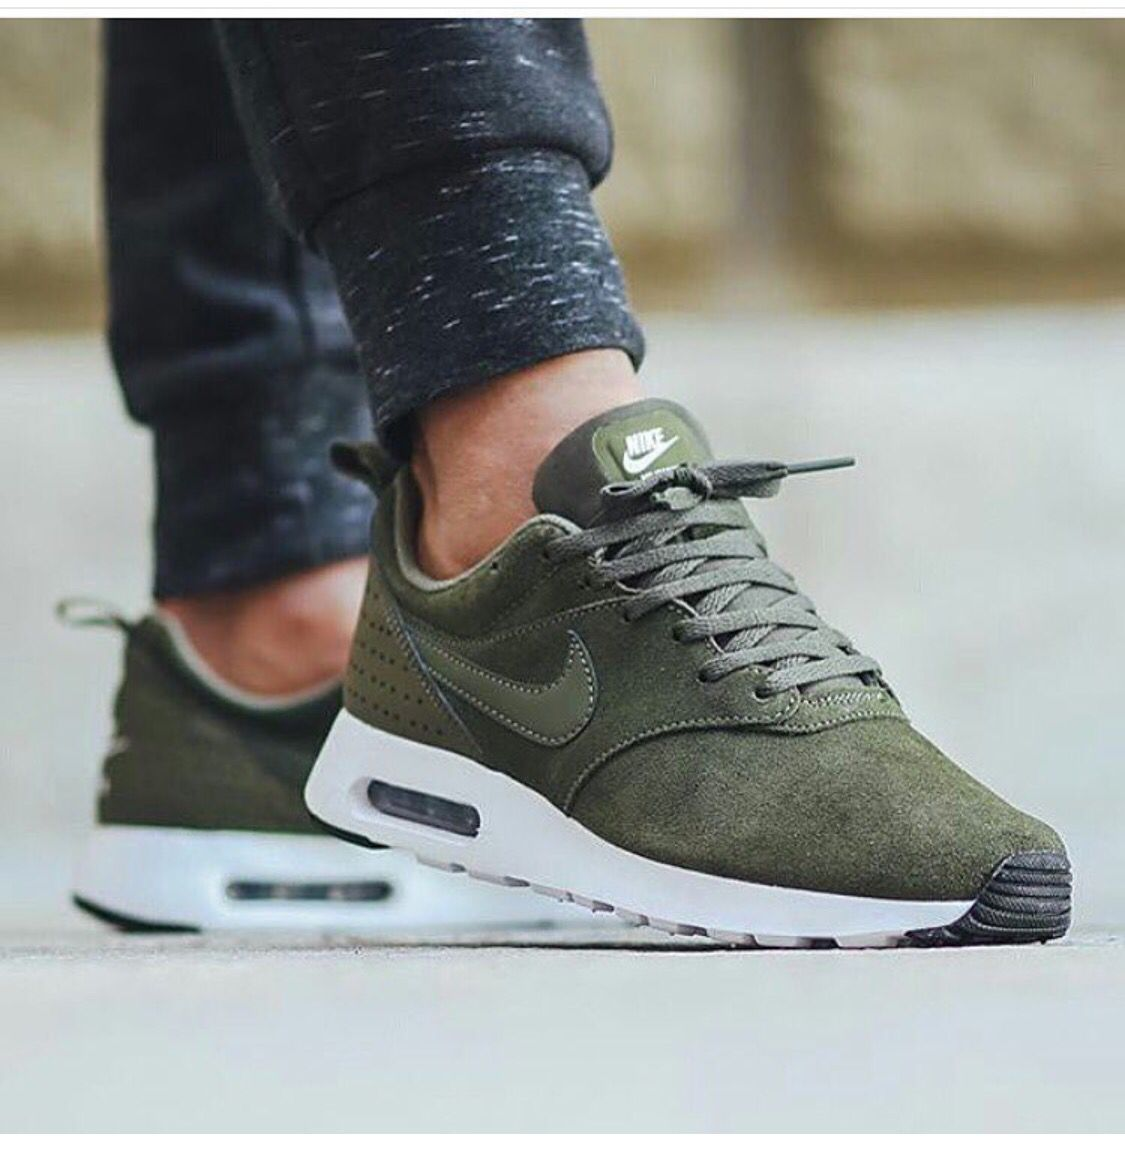 Suede nike green trainers | Adidas